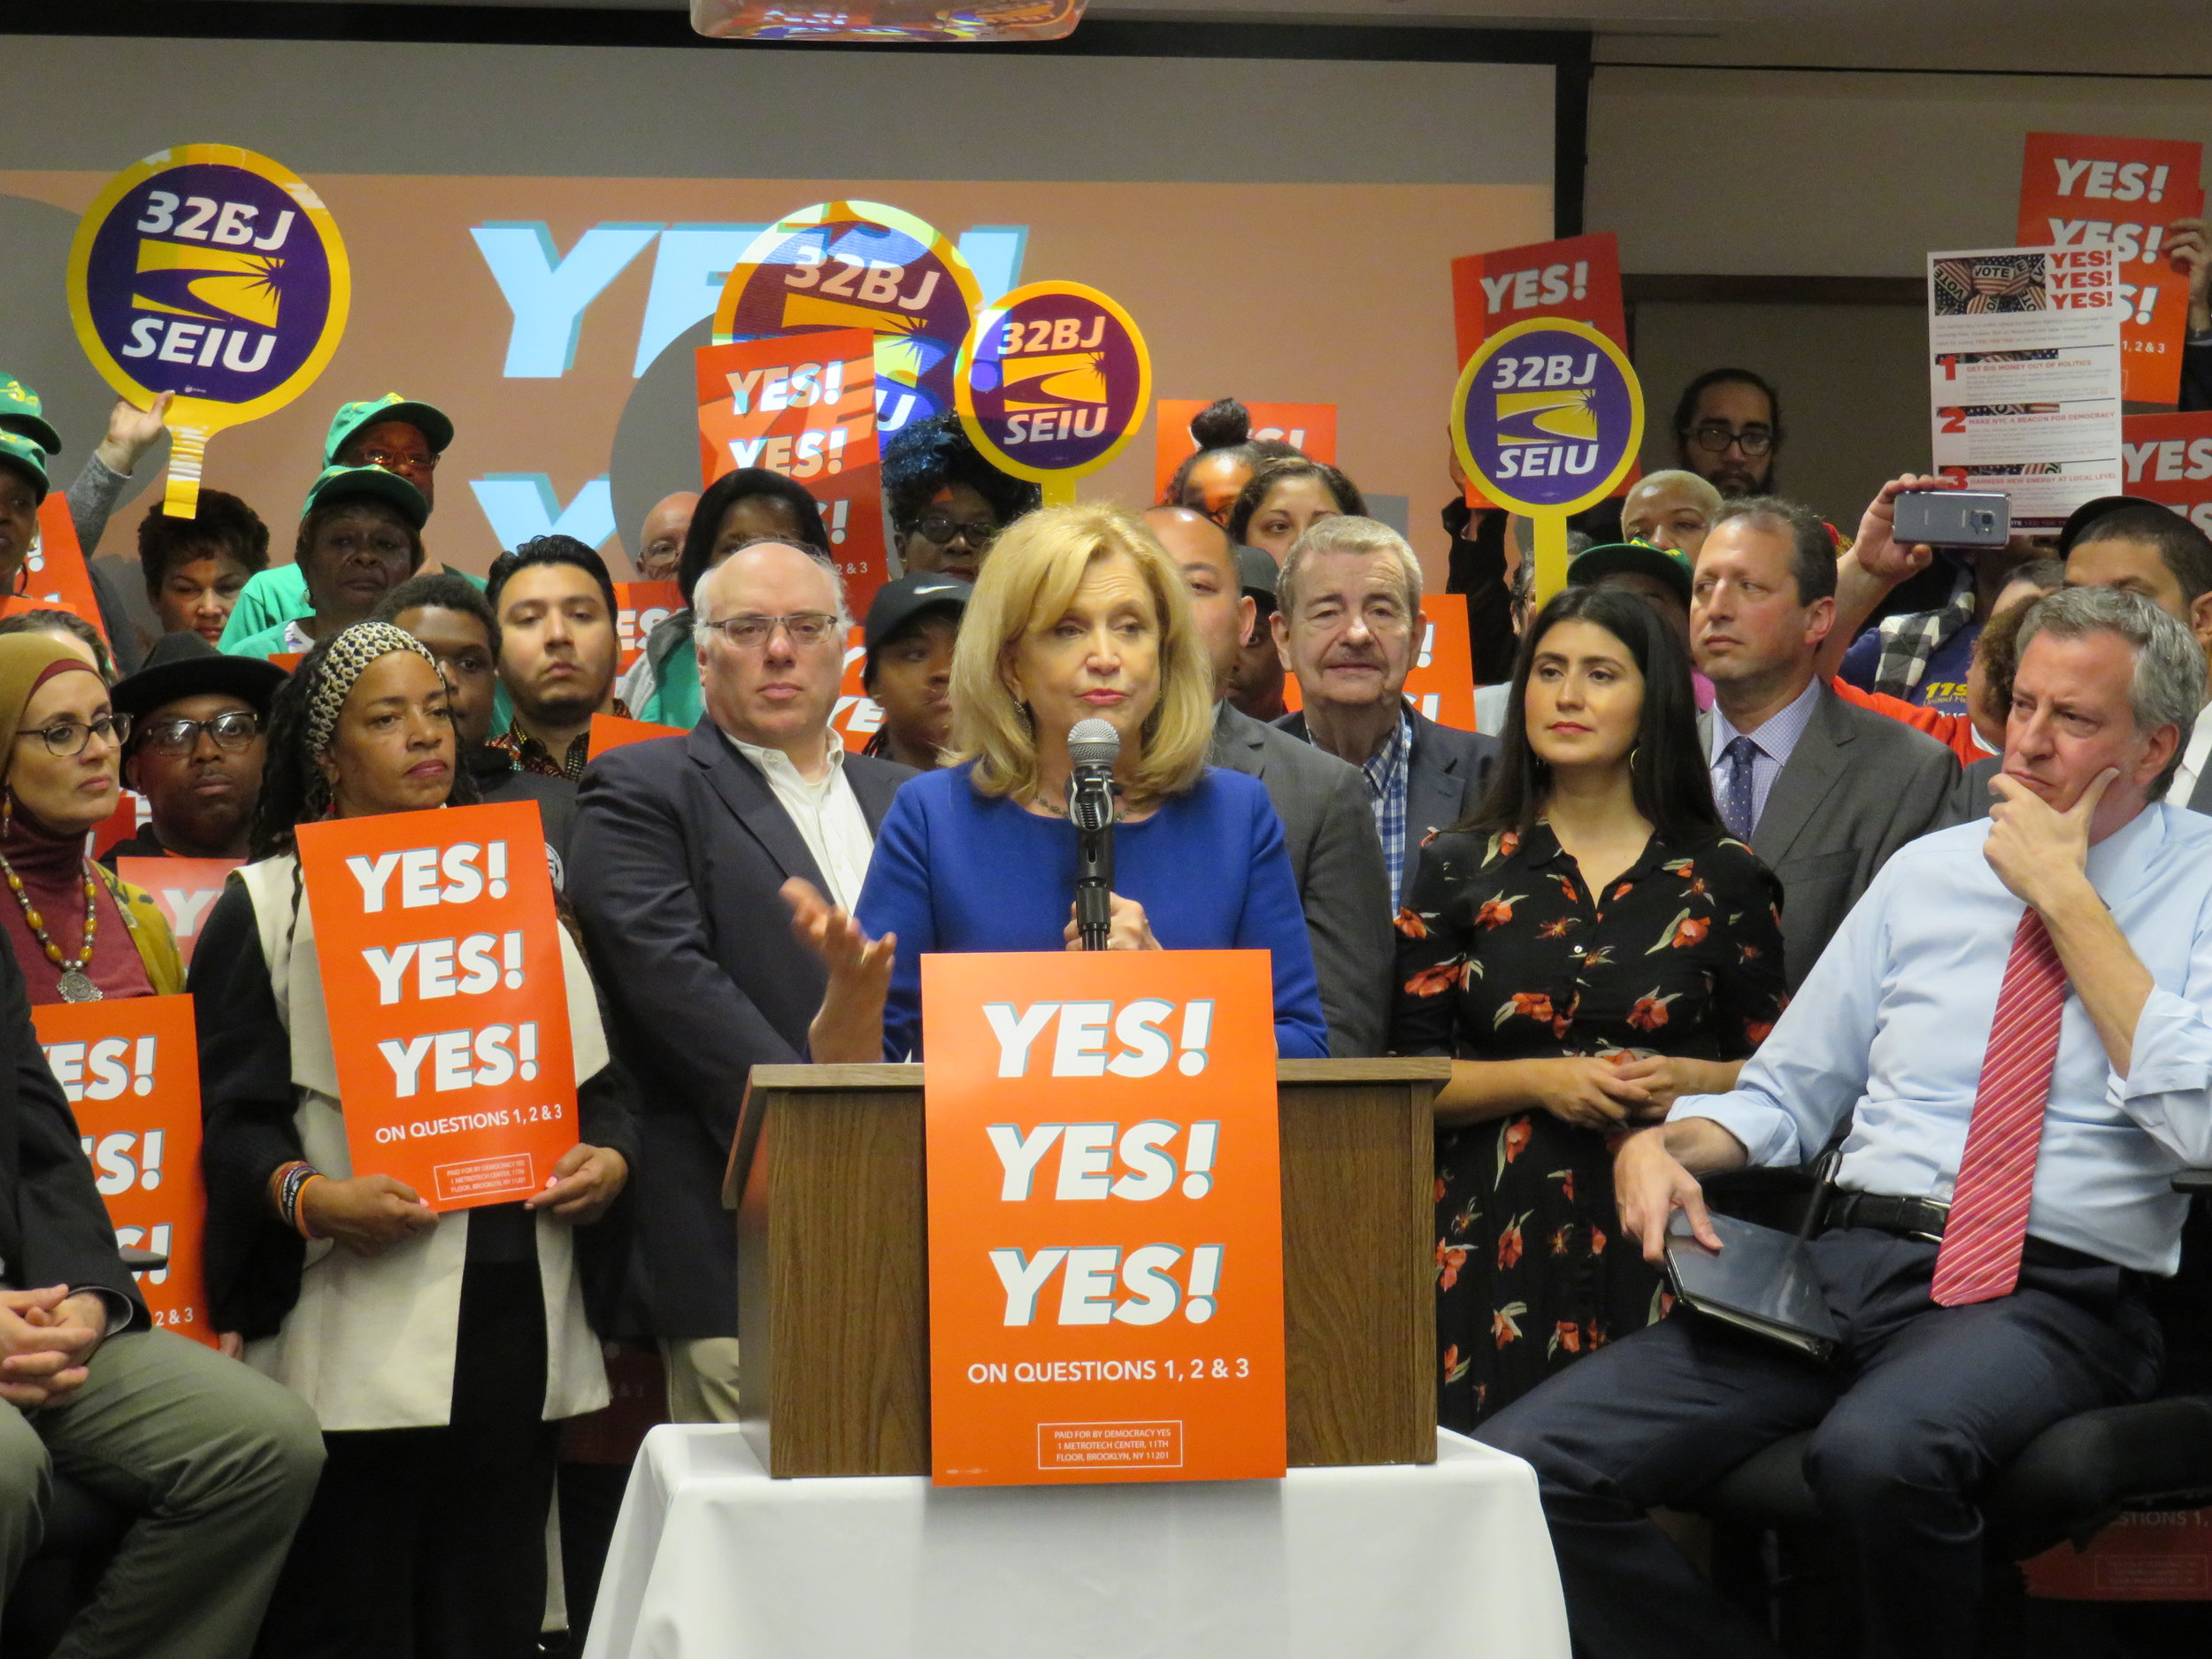 U.S. Rep. Carolyn Maloney, who represents Western Queens, urged voters to support three charter revision ballot proposals at a rally last Thursday. All three ballot proposals passed overwhelmingly.  Eagle  photo by David Brand.